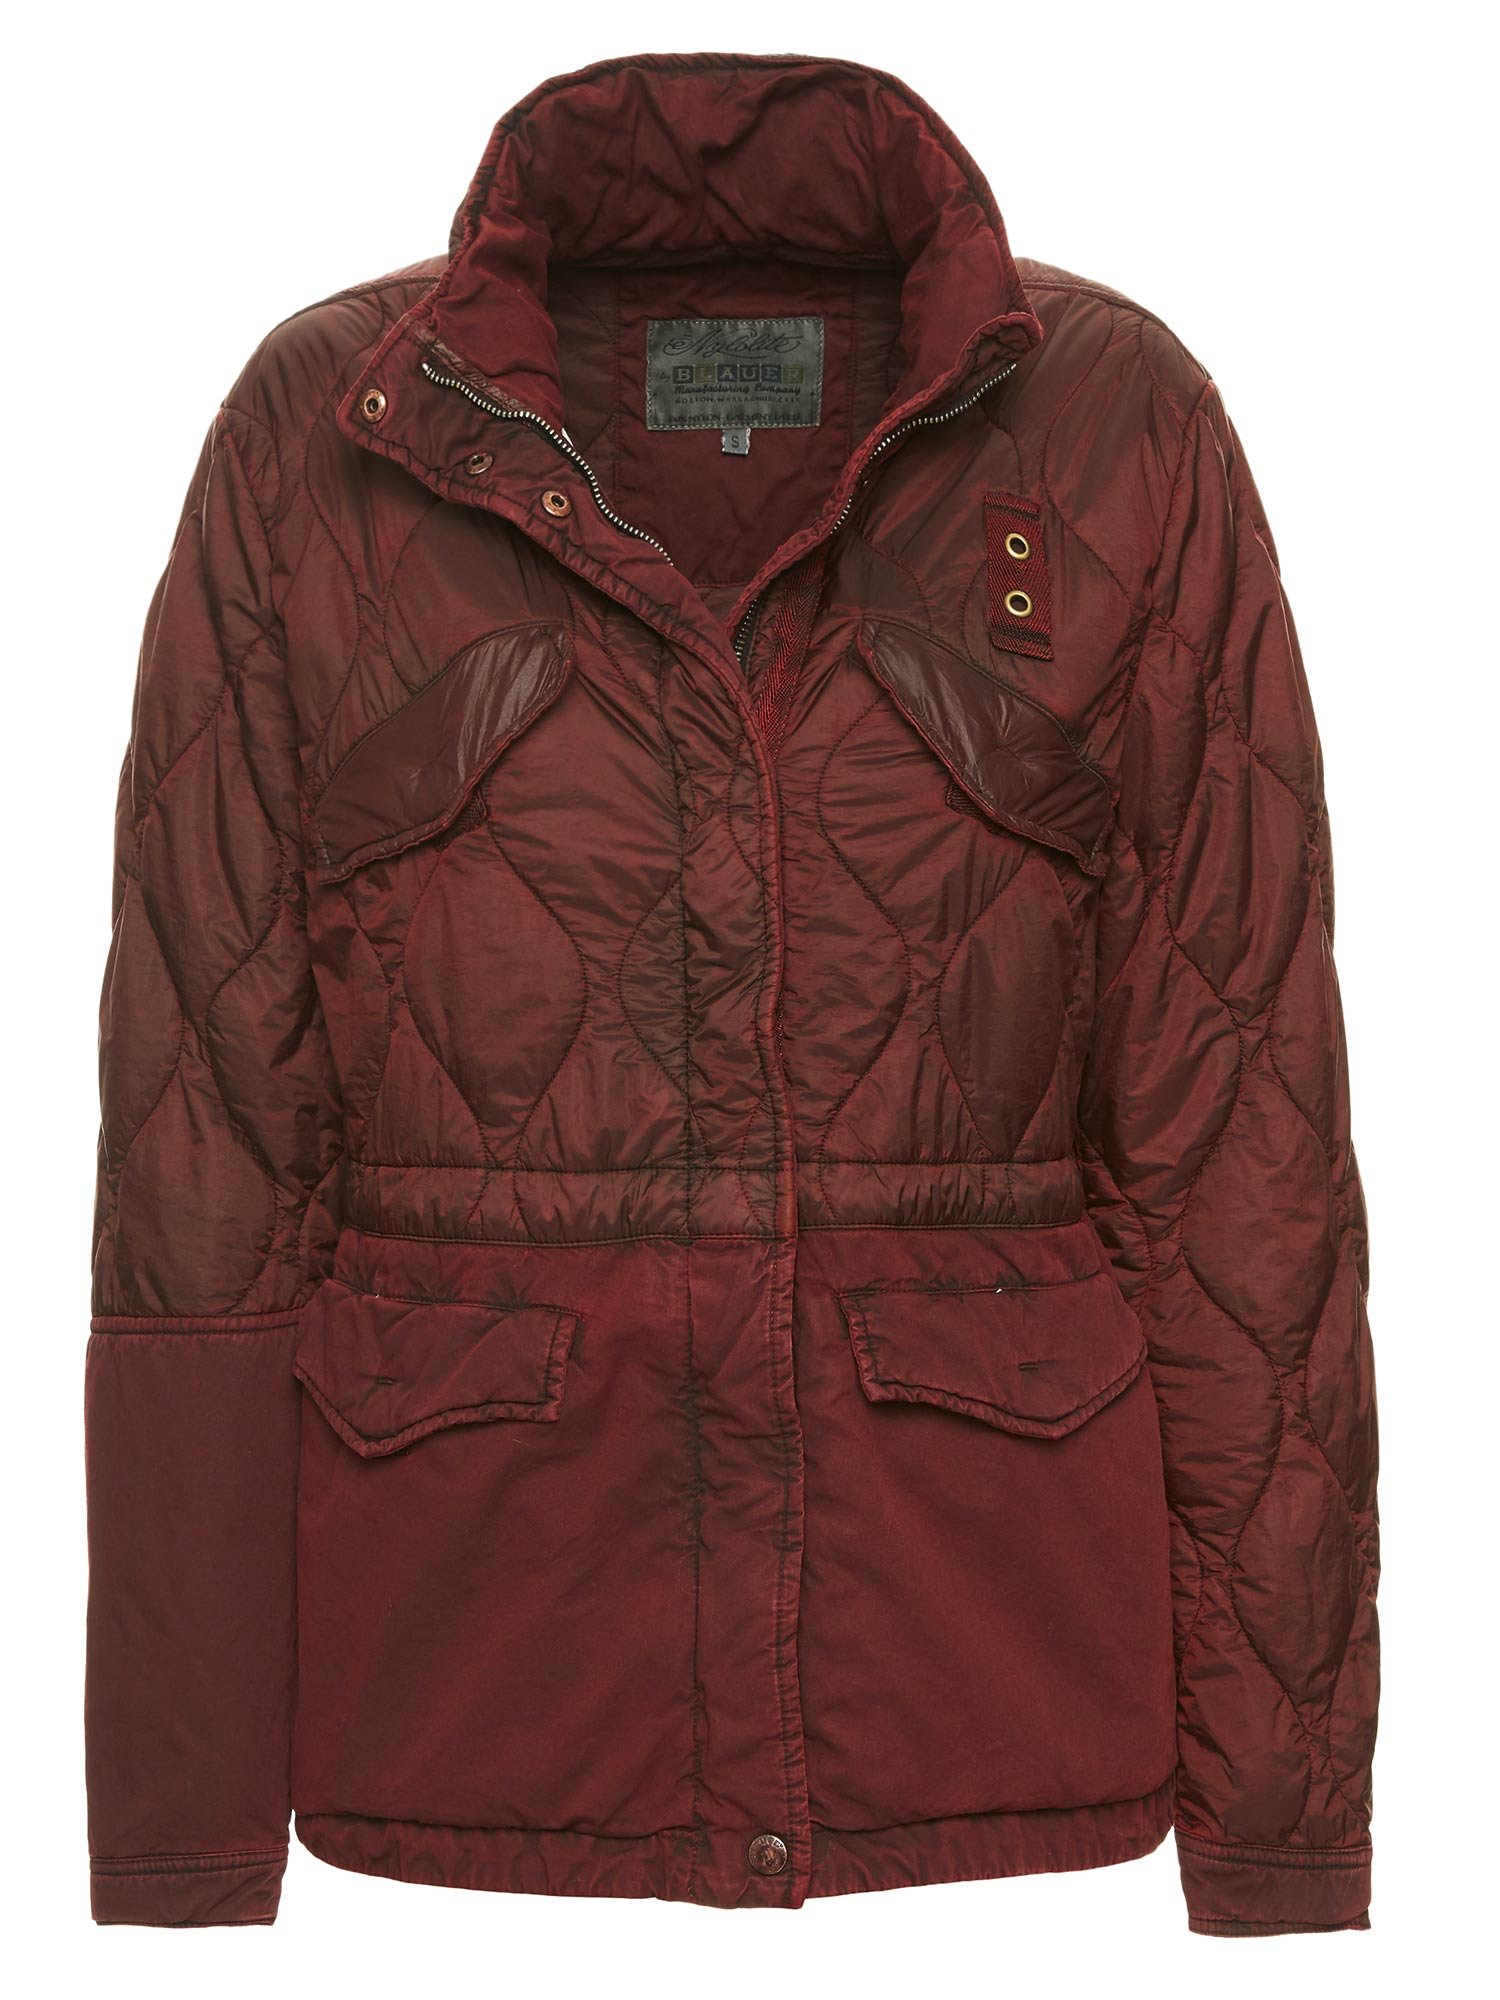 LIV PATCHWORK MILITARY JACKET - Blauer